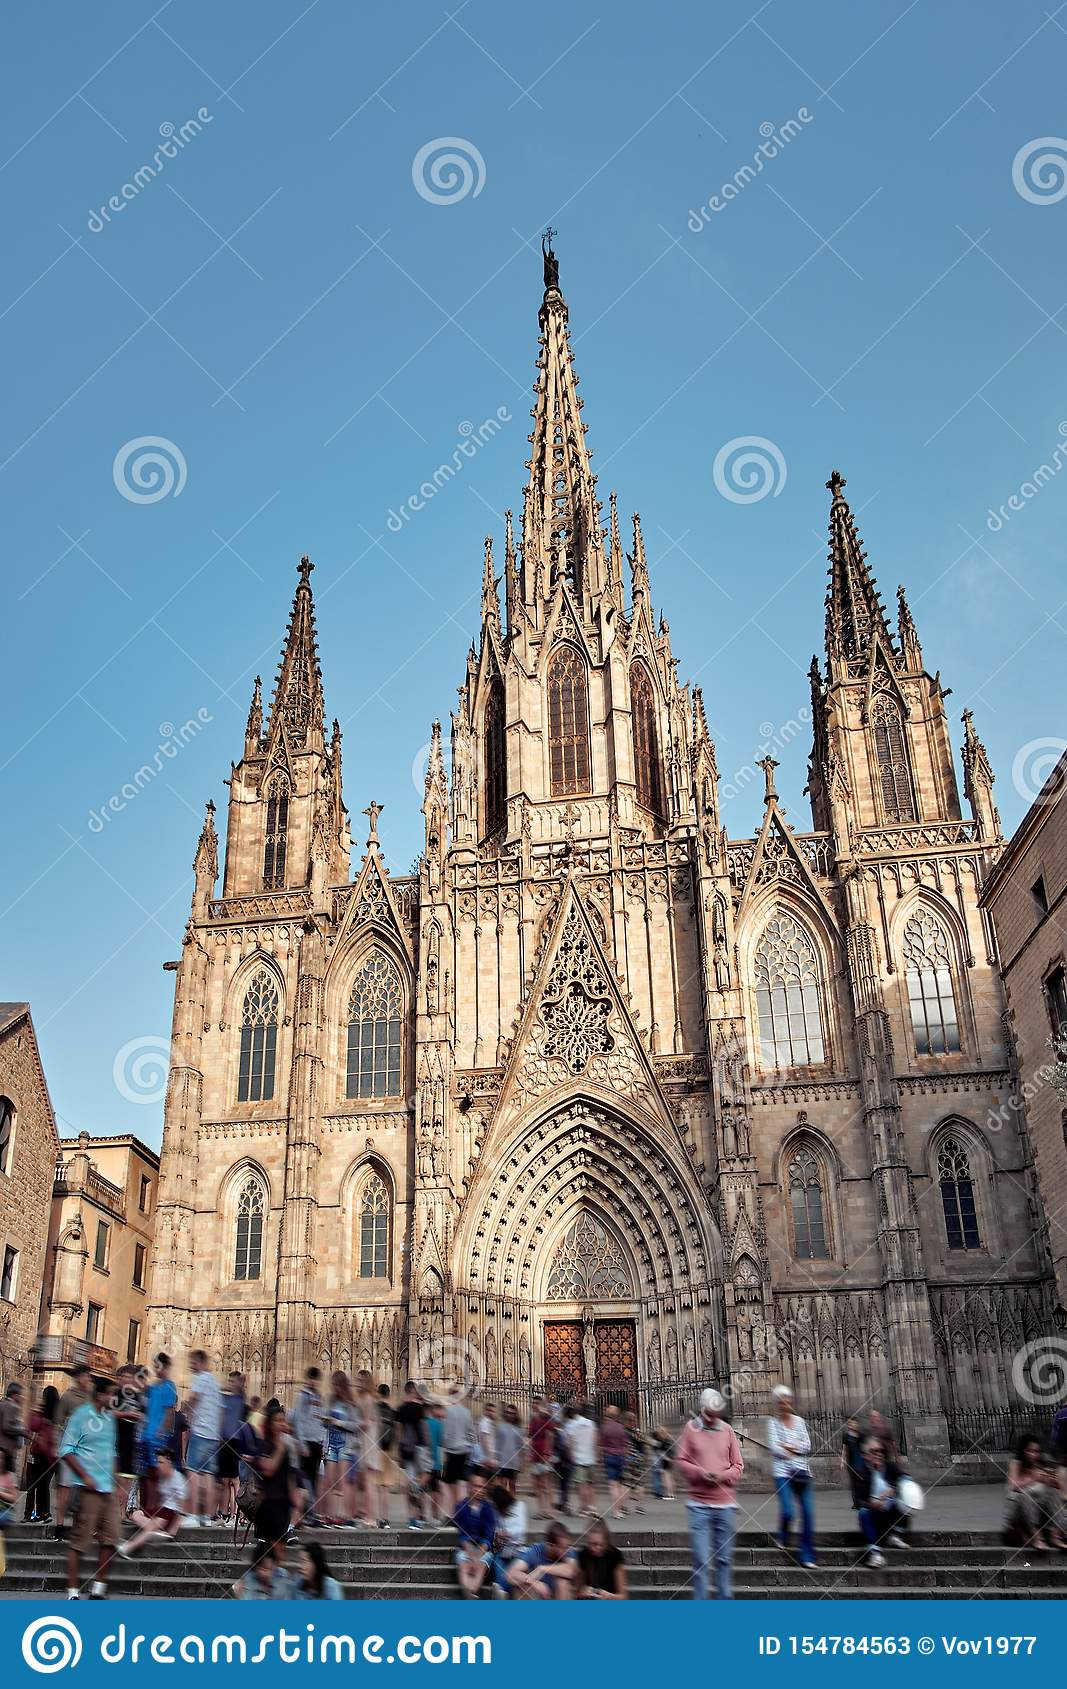 Cathedral of the Holy Cross and Saint Eulalia also known as Barcelona Cathedral, Gothic cathedral and seat of the Archbishop of